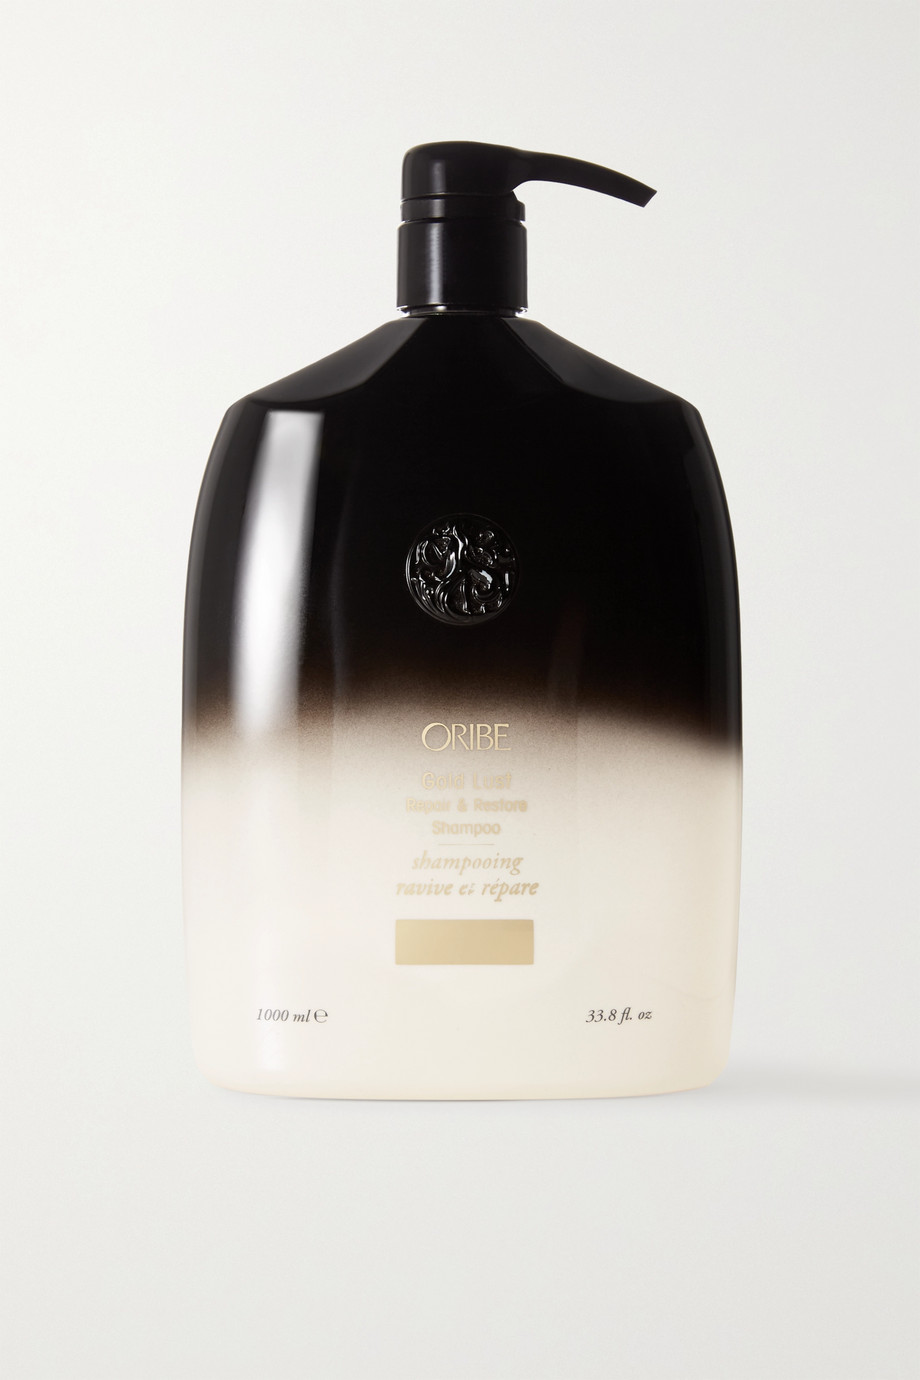 Oribe Gold Lust Repair & Restore Shampoo, 1000ml